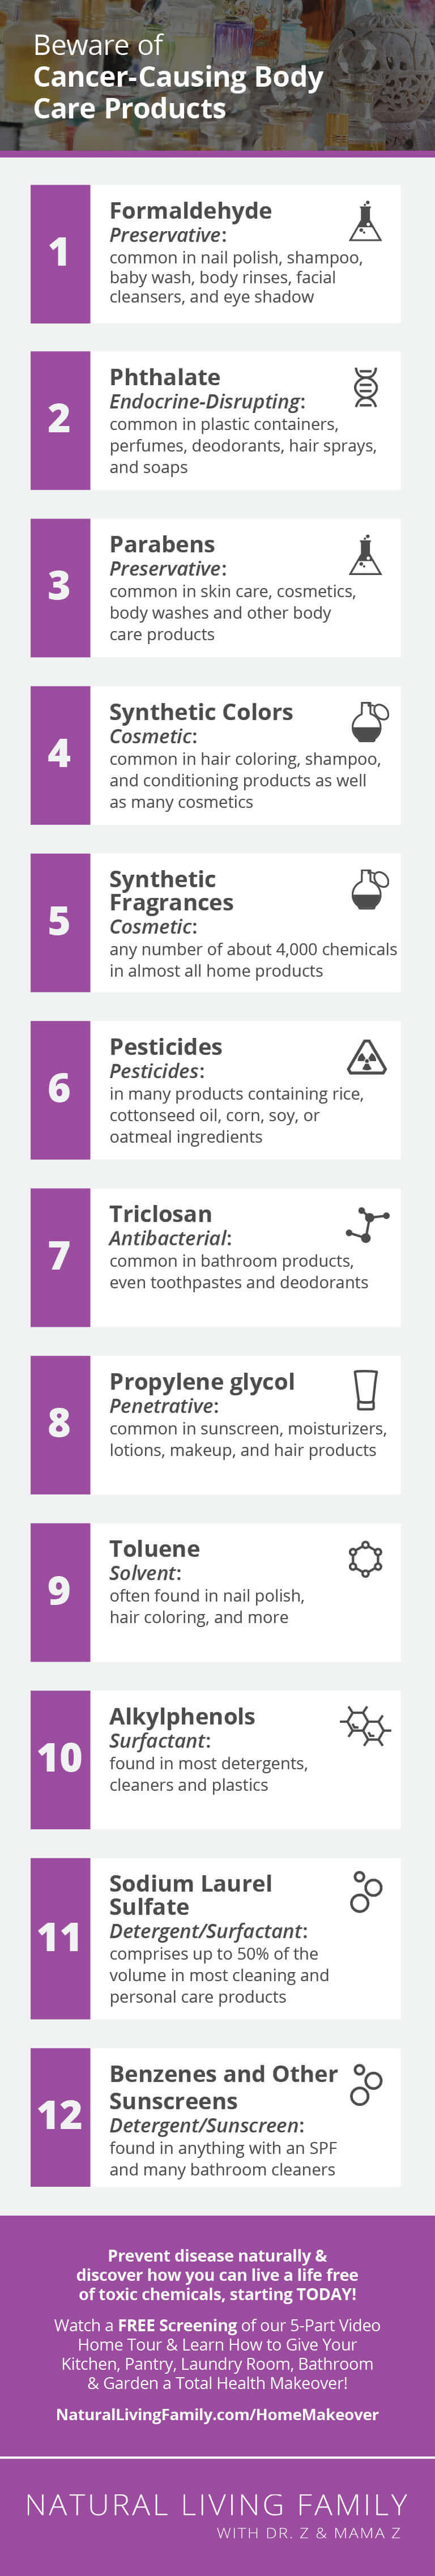 Known Carcinogens in Body Care Products